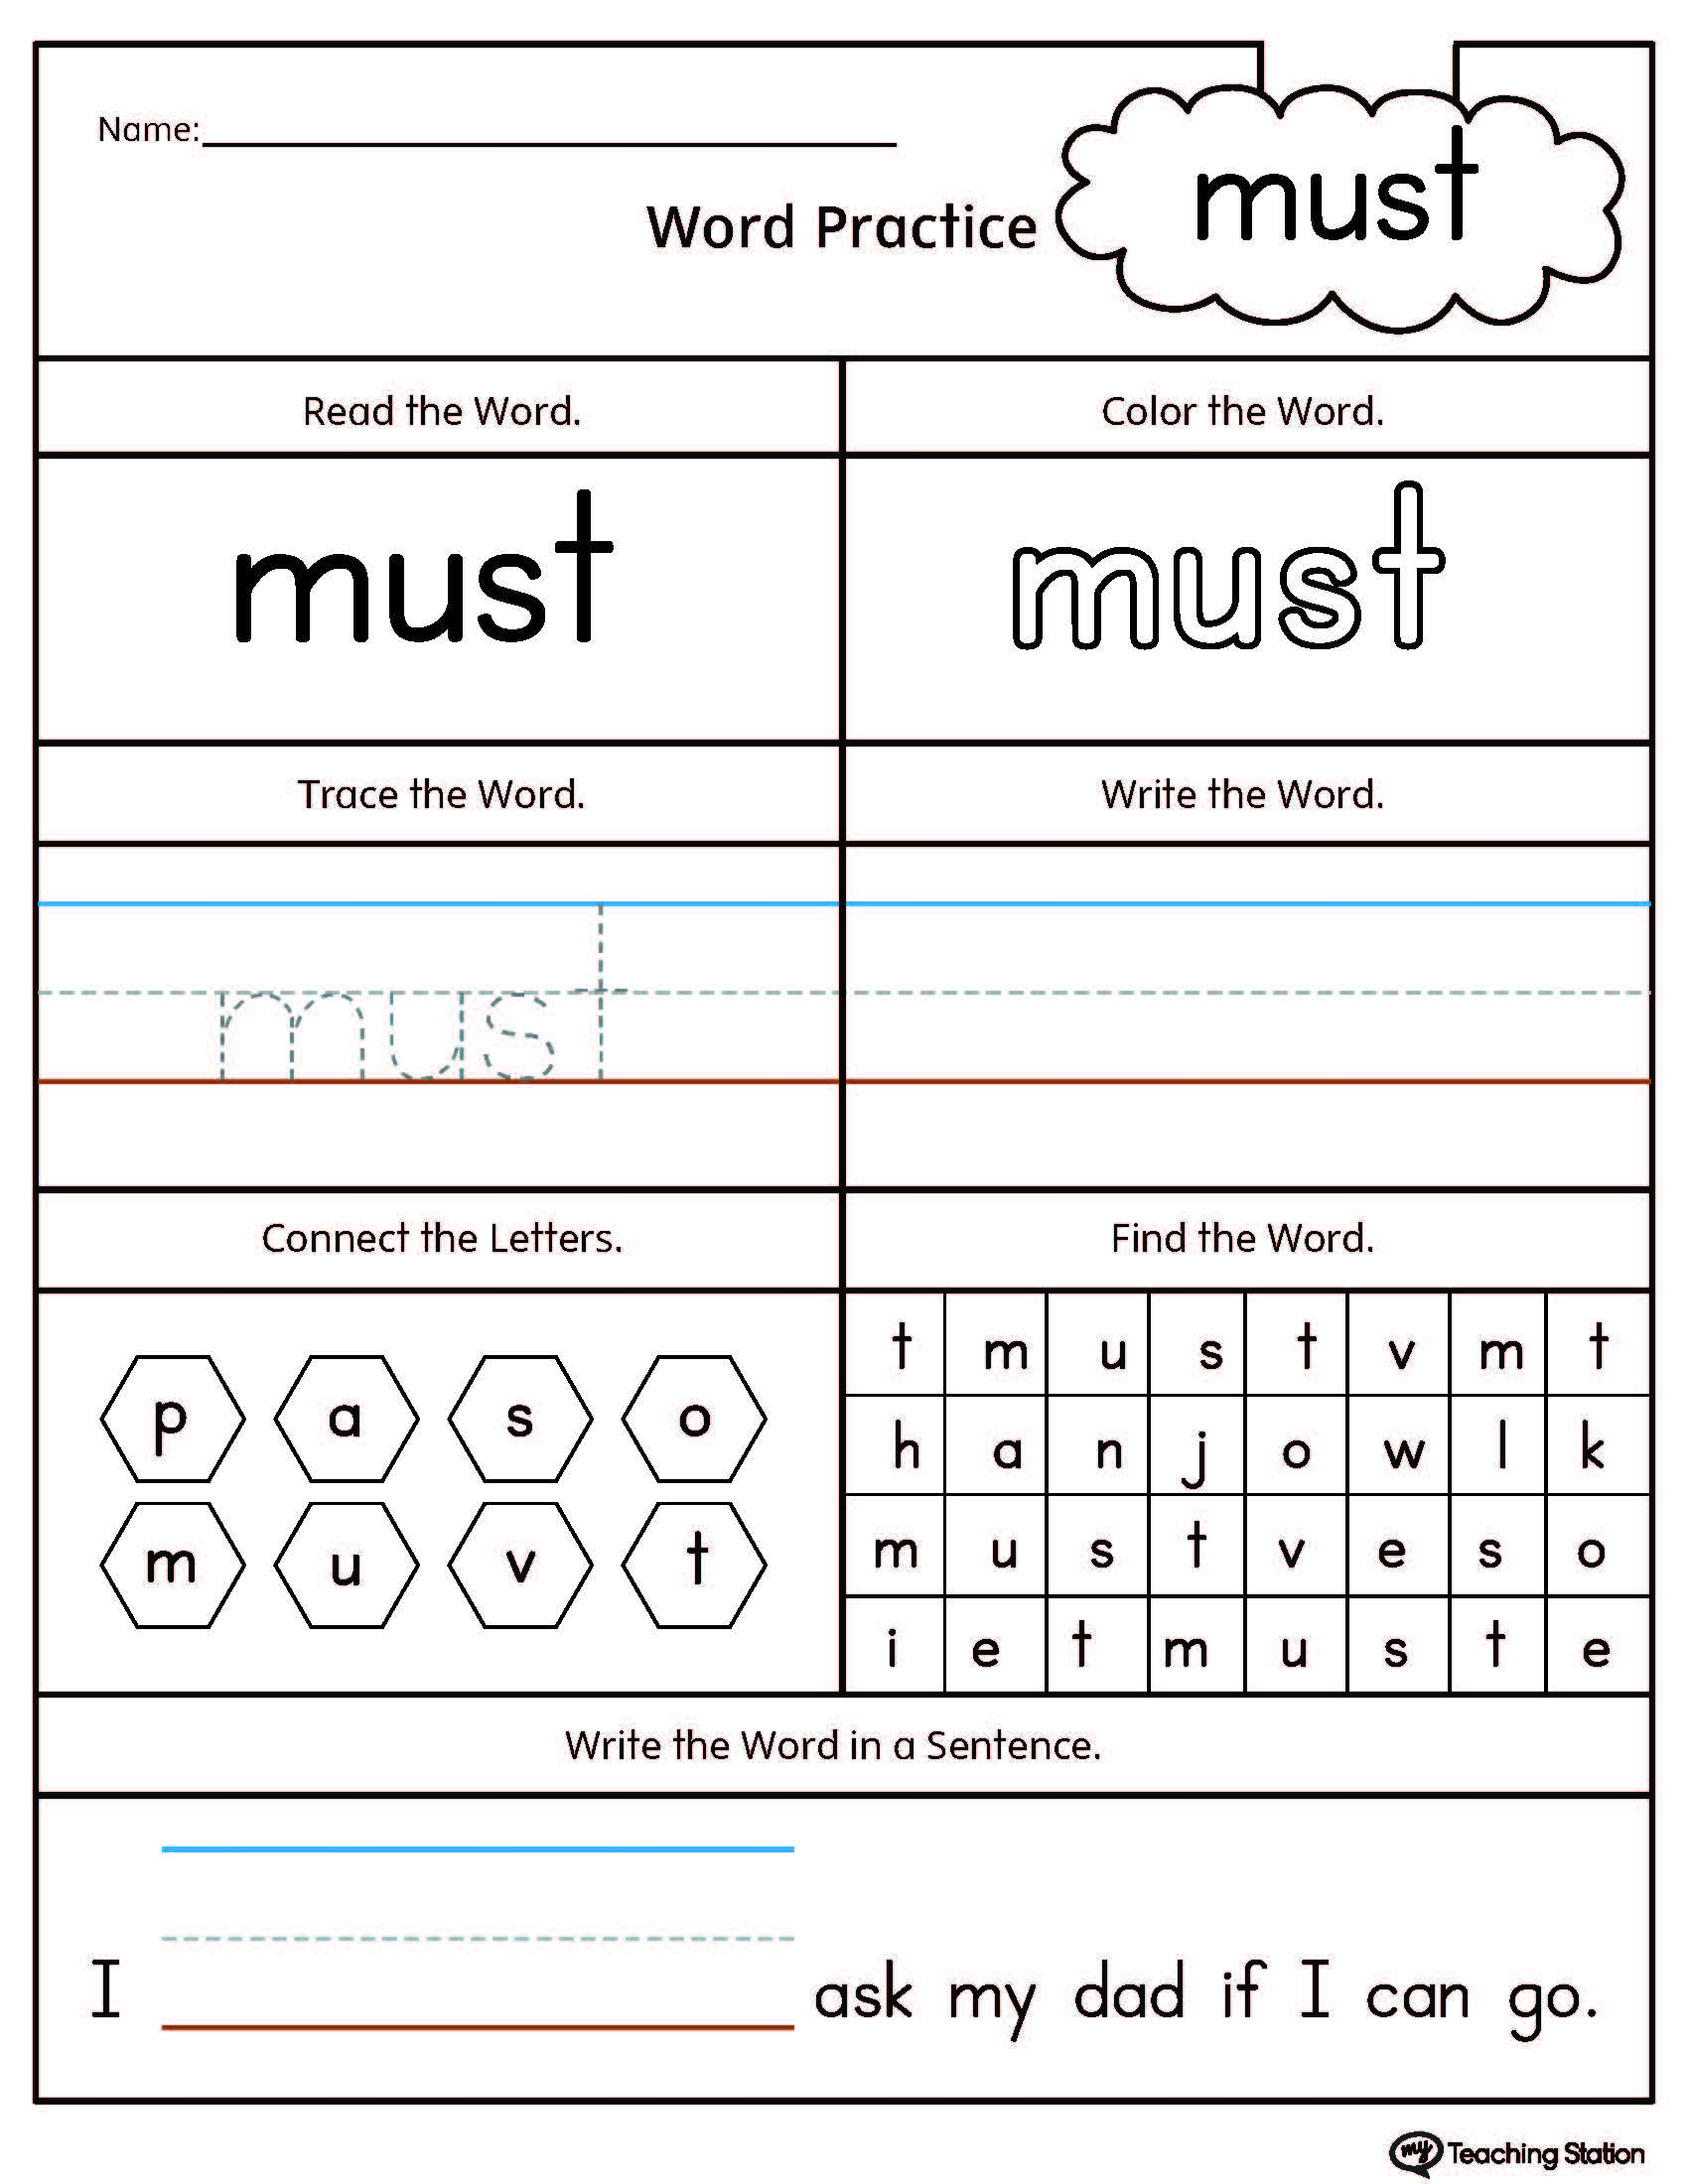 Worksheets Sight Words Worksheets Free high frequency words printable worksheets myteachingstation com word must worksheet